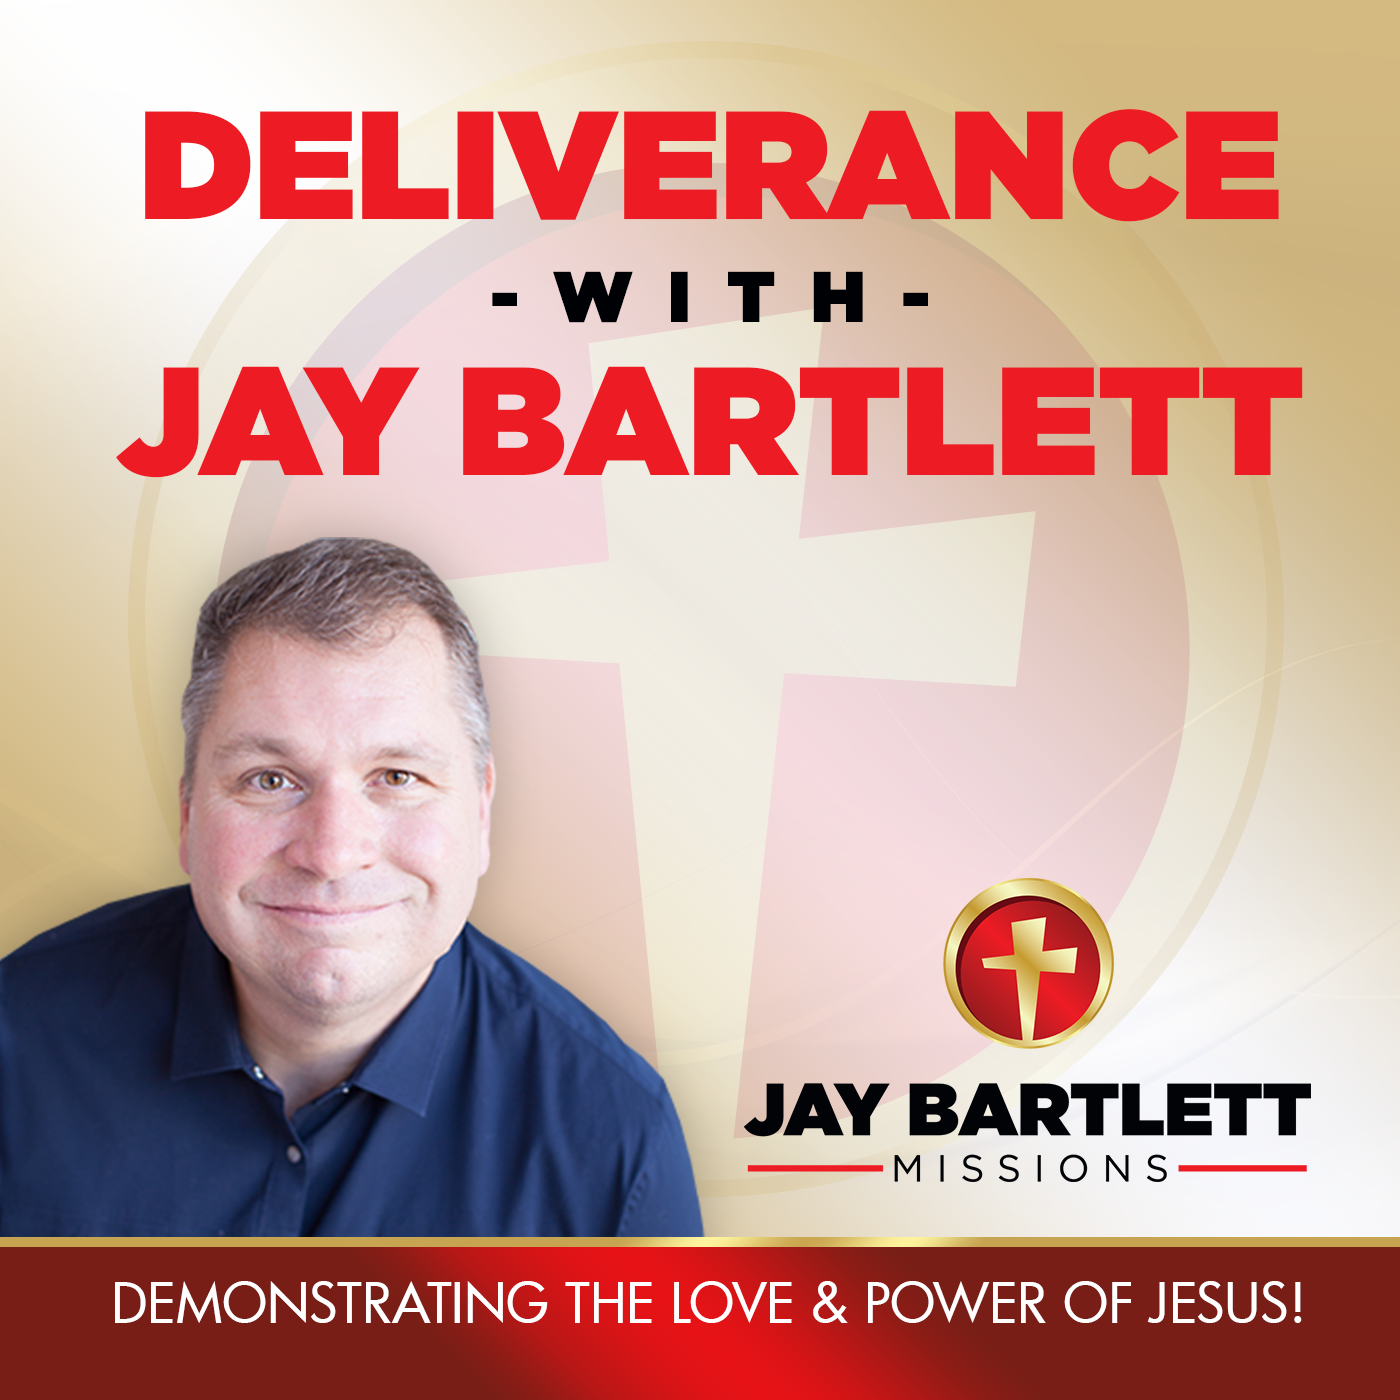 Deliverance with Jay Bartlett